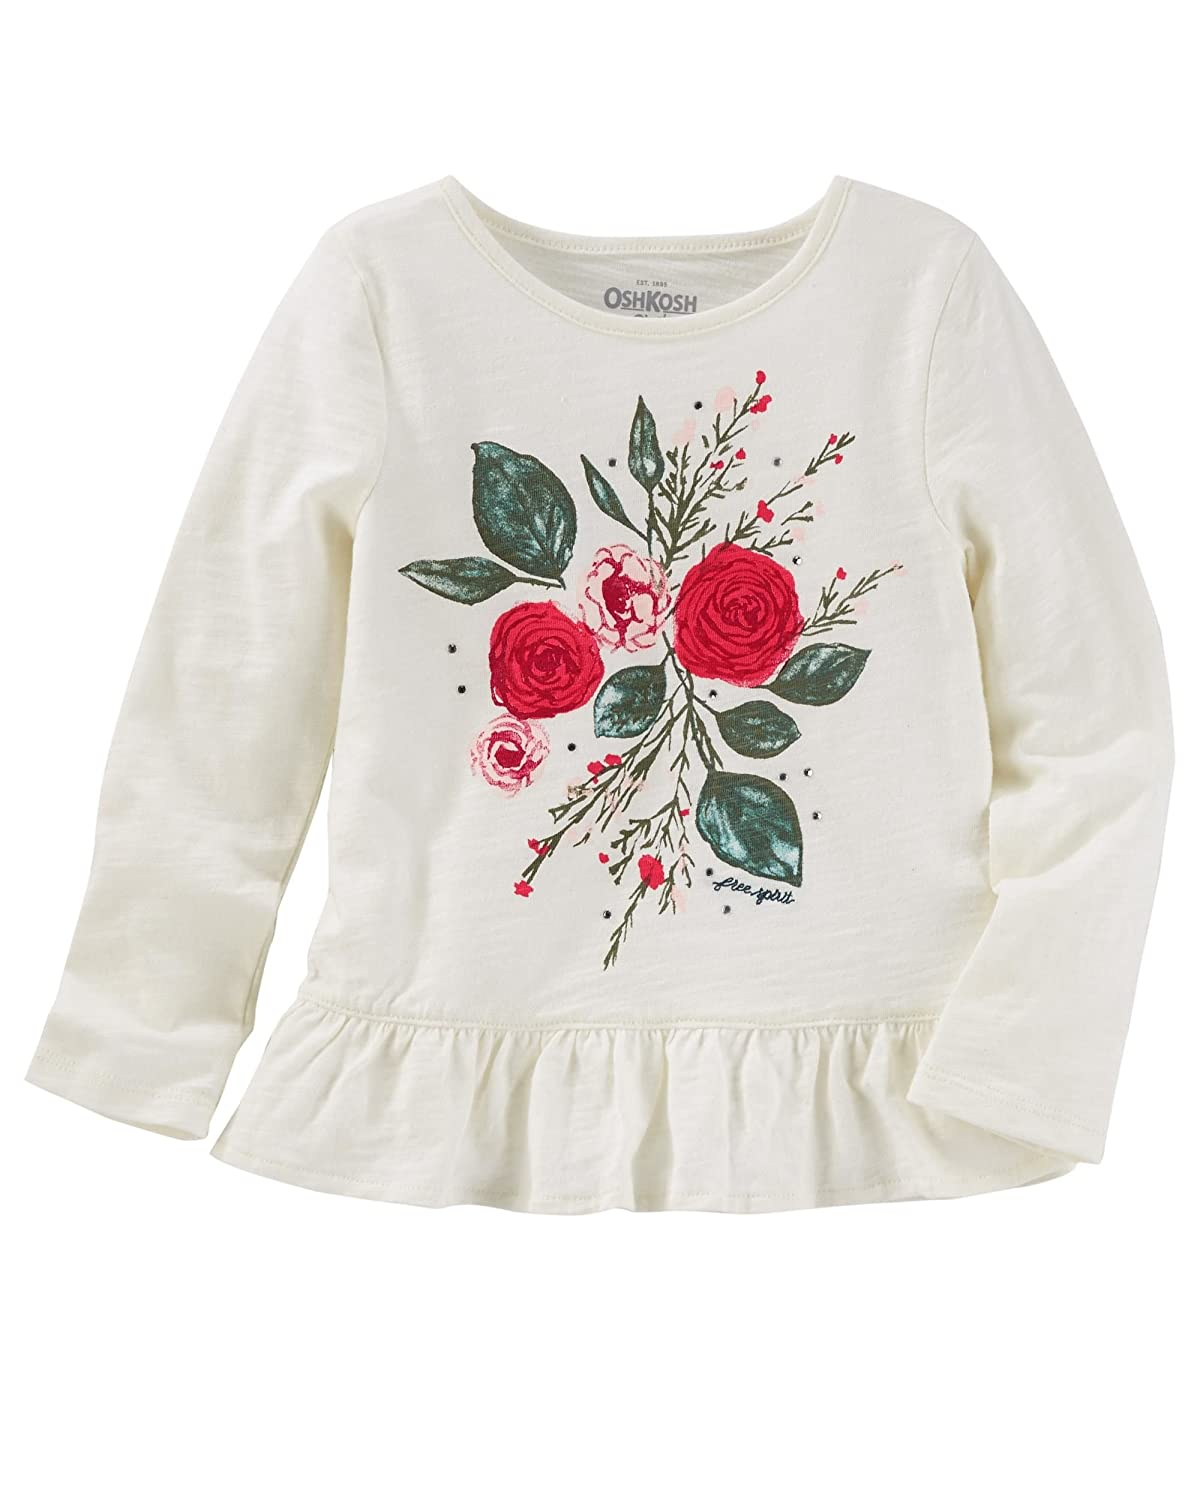 OshKosh Girls Ruffle Hem L/S Tee, Rose Graphic, Ivory, 12m